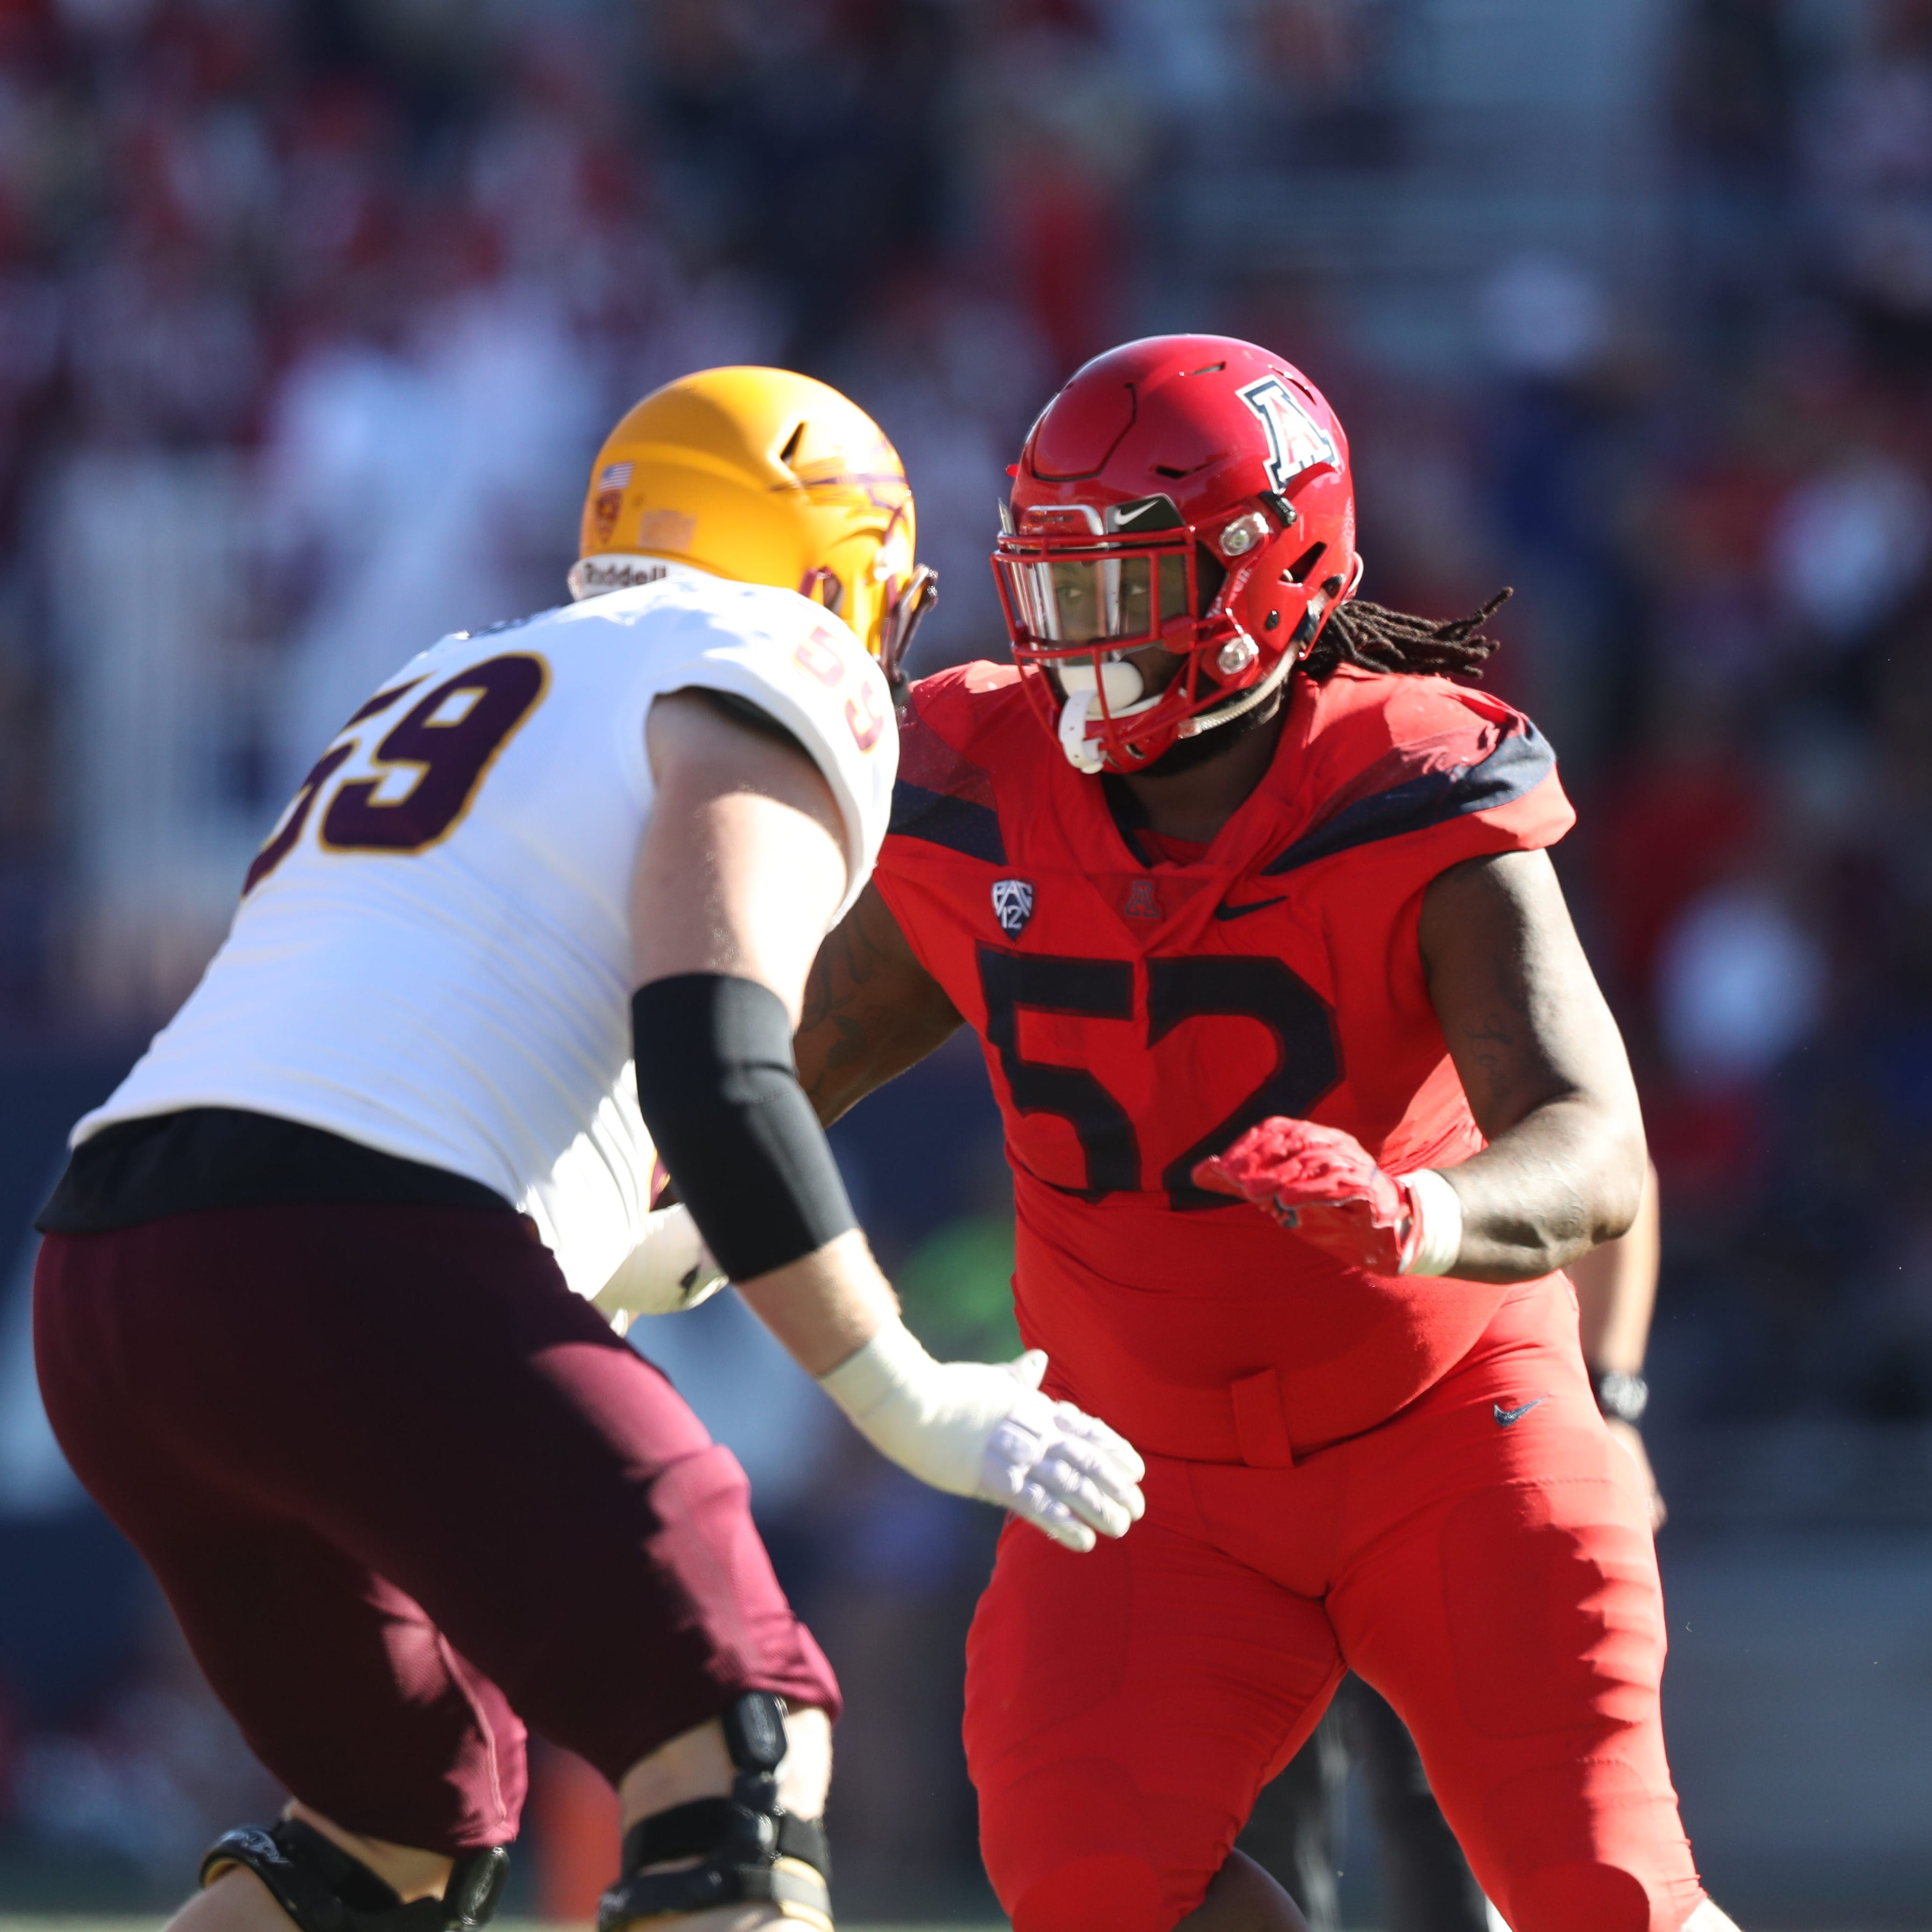 Lions earn B for drafting massive Arizona DT P.J. Johnson in Round 7